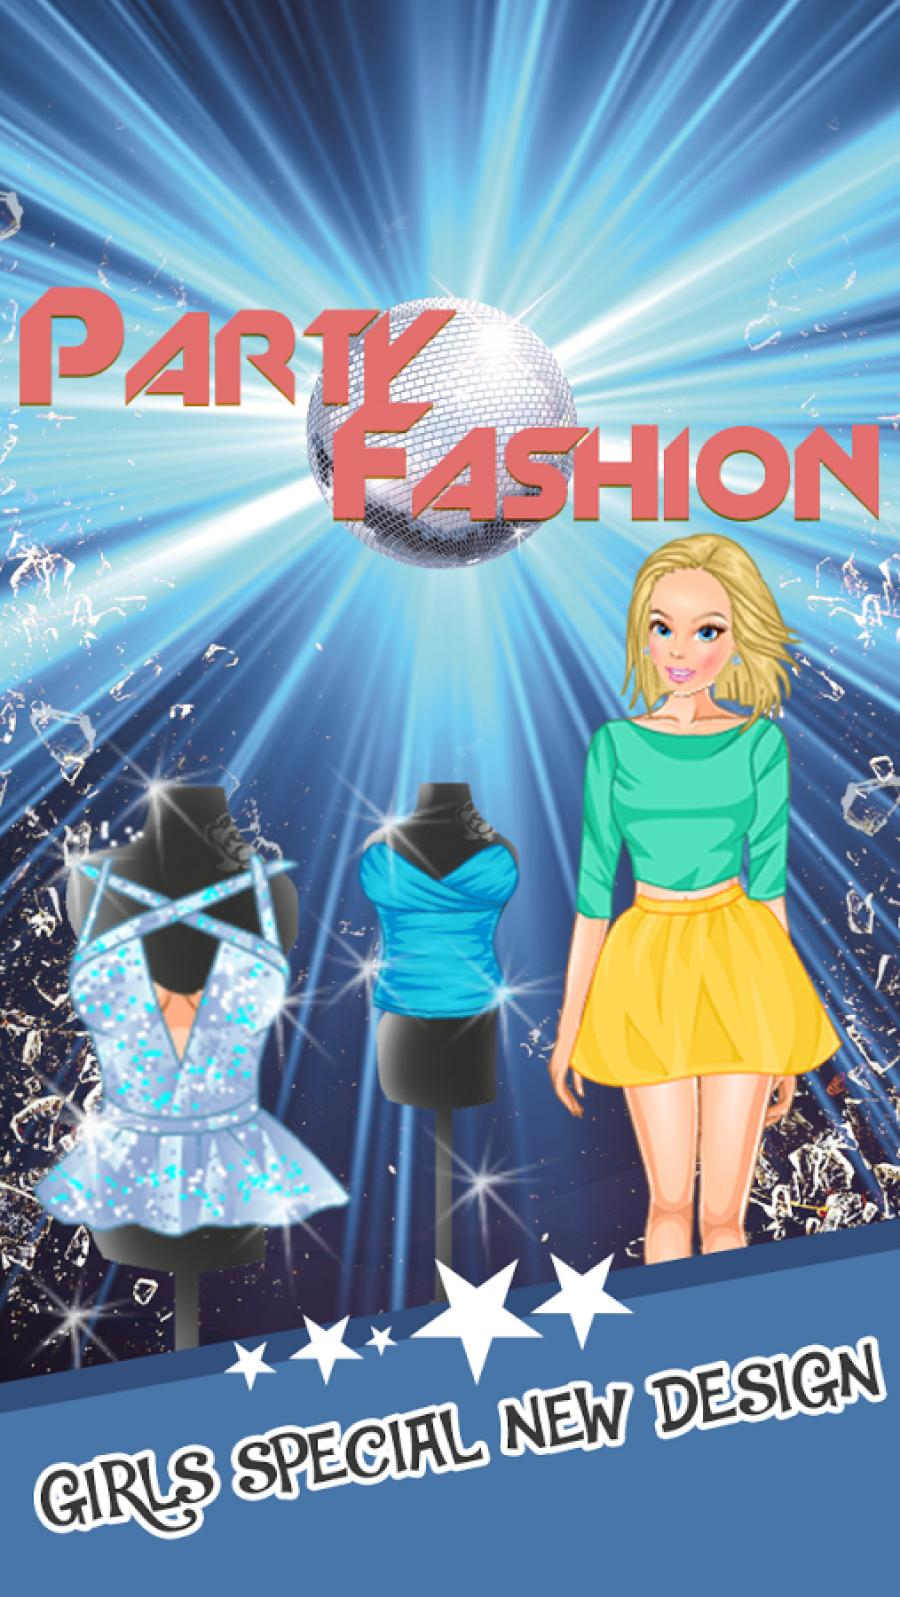 Fashion dress up party 74